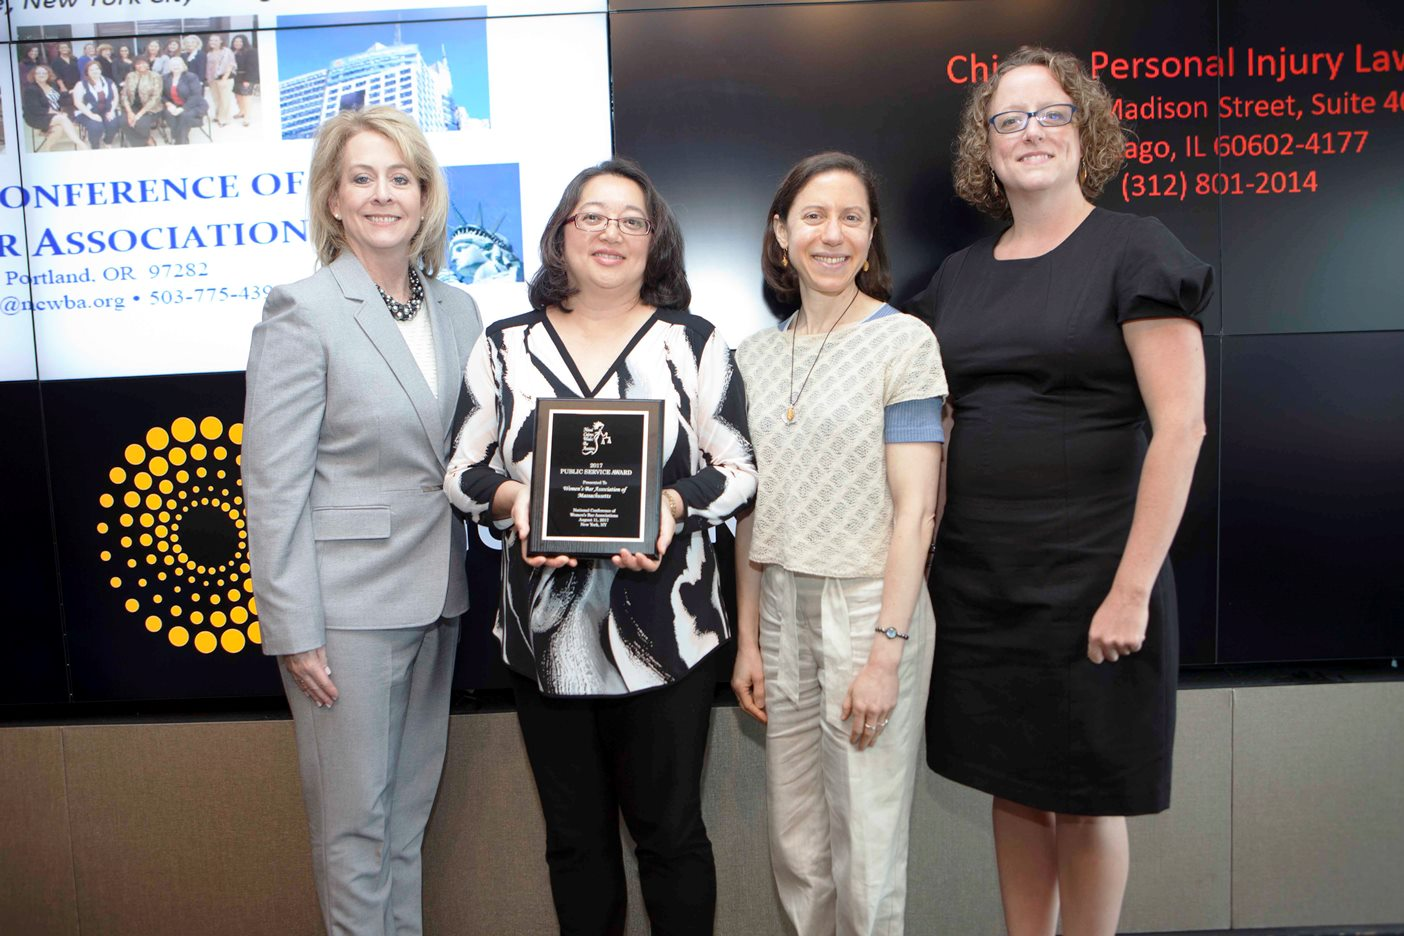 Women's Bar Association of Massachusetts Group Awards Photo